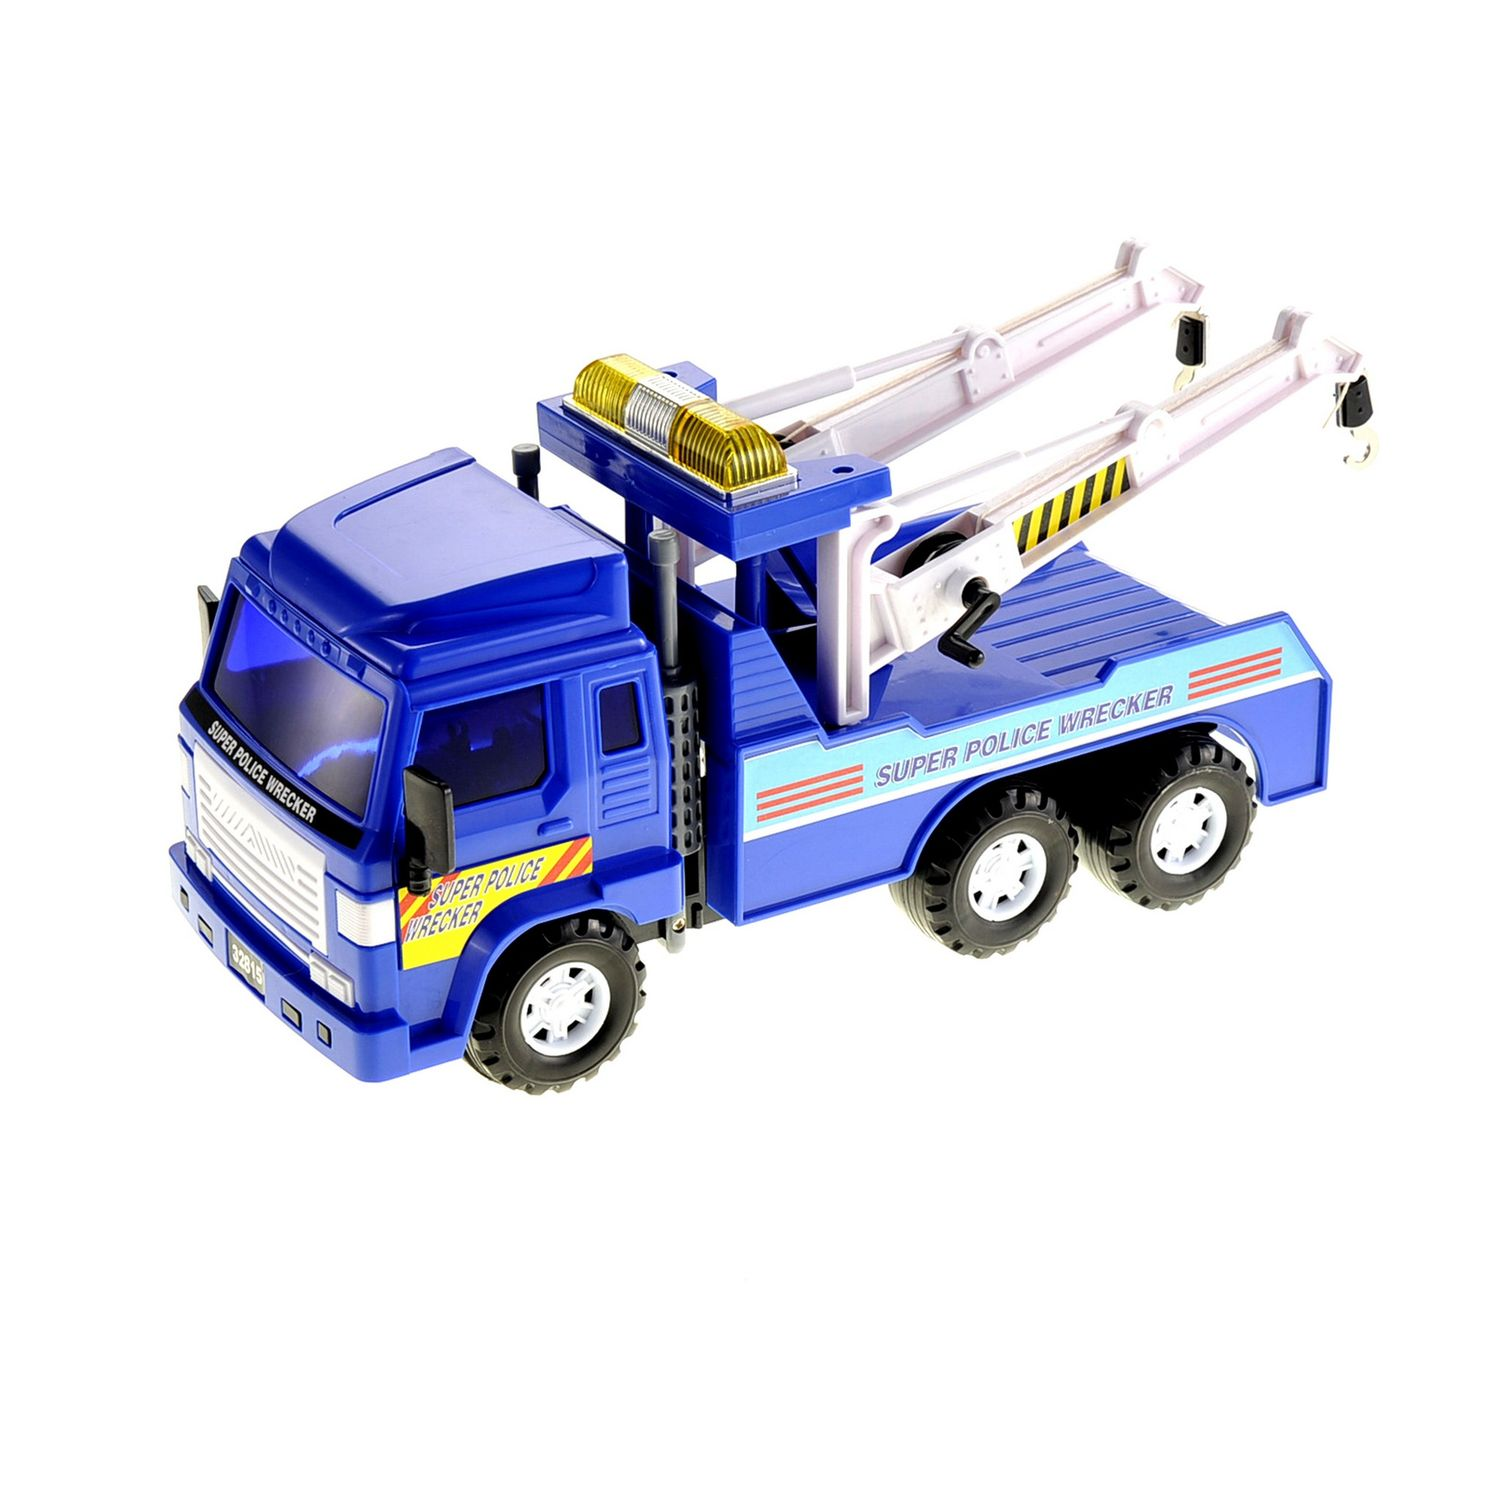 Big Heavy Duty Wrecker Tow Truck Police Toy for Kids with Fr by